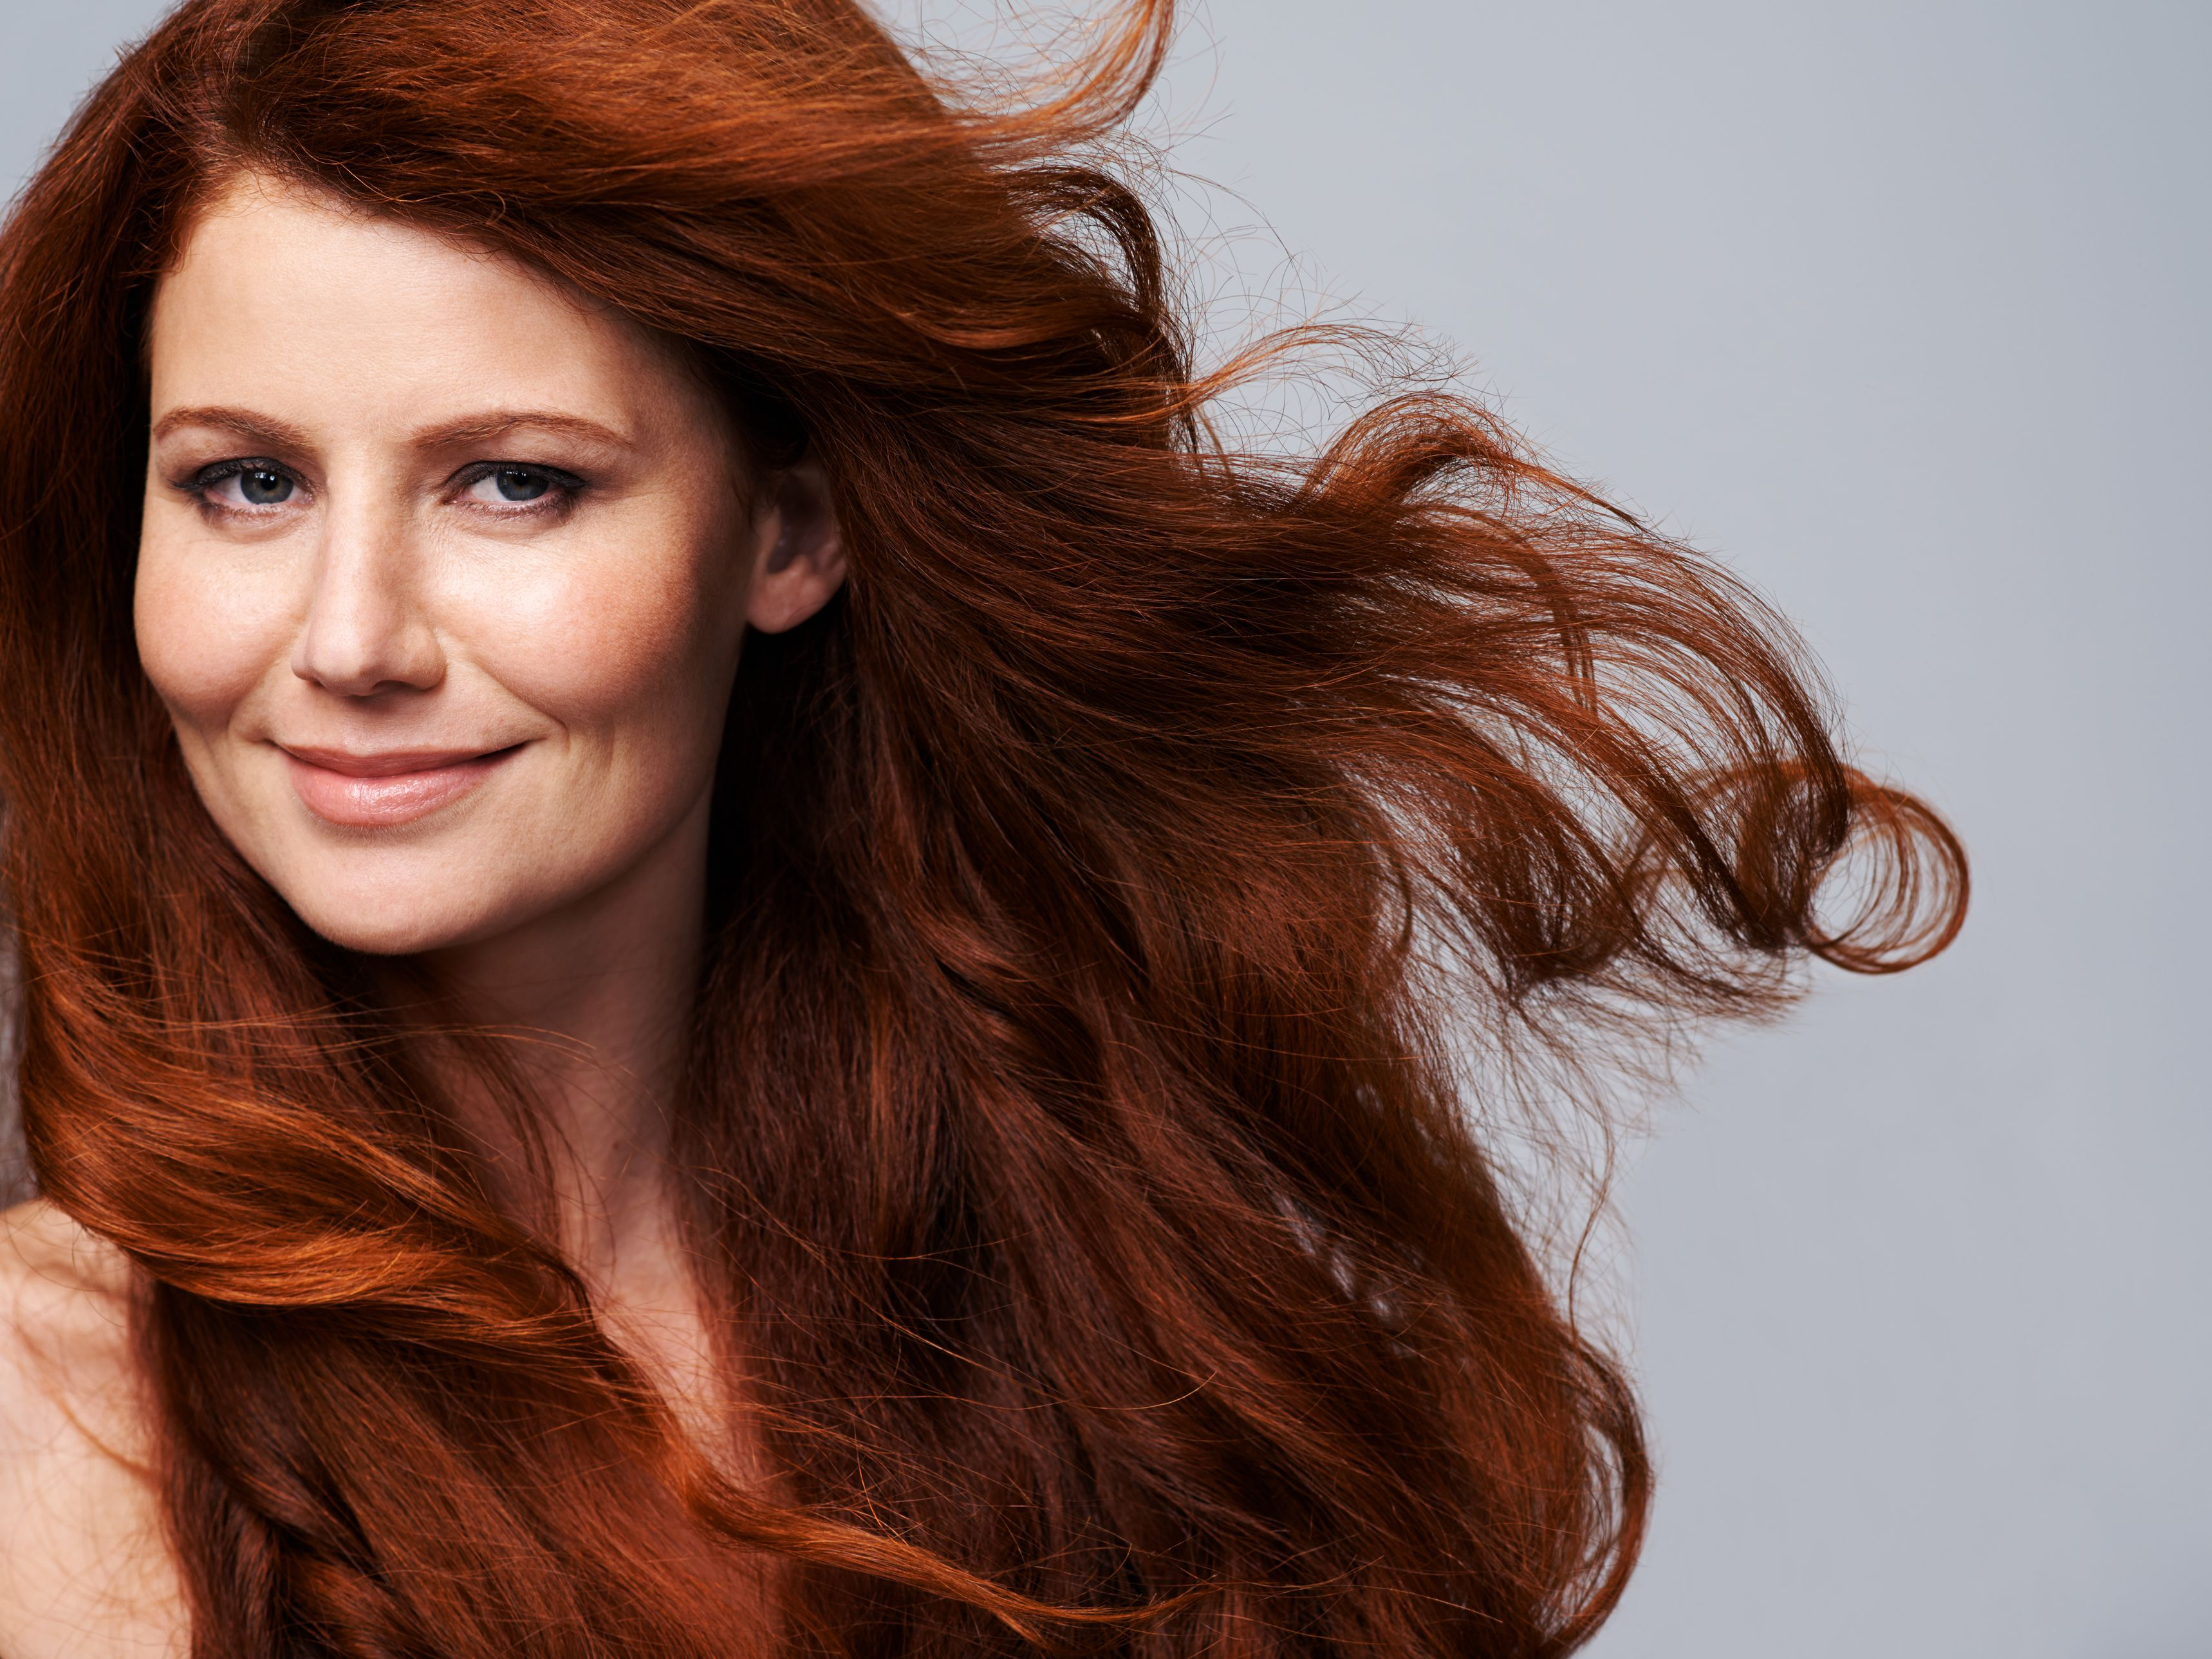 How To Mix Goldwell Hair Color With Developer